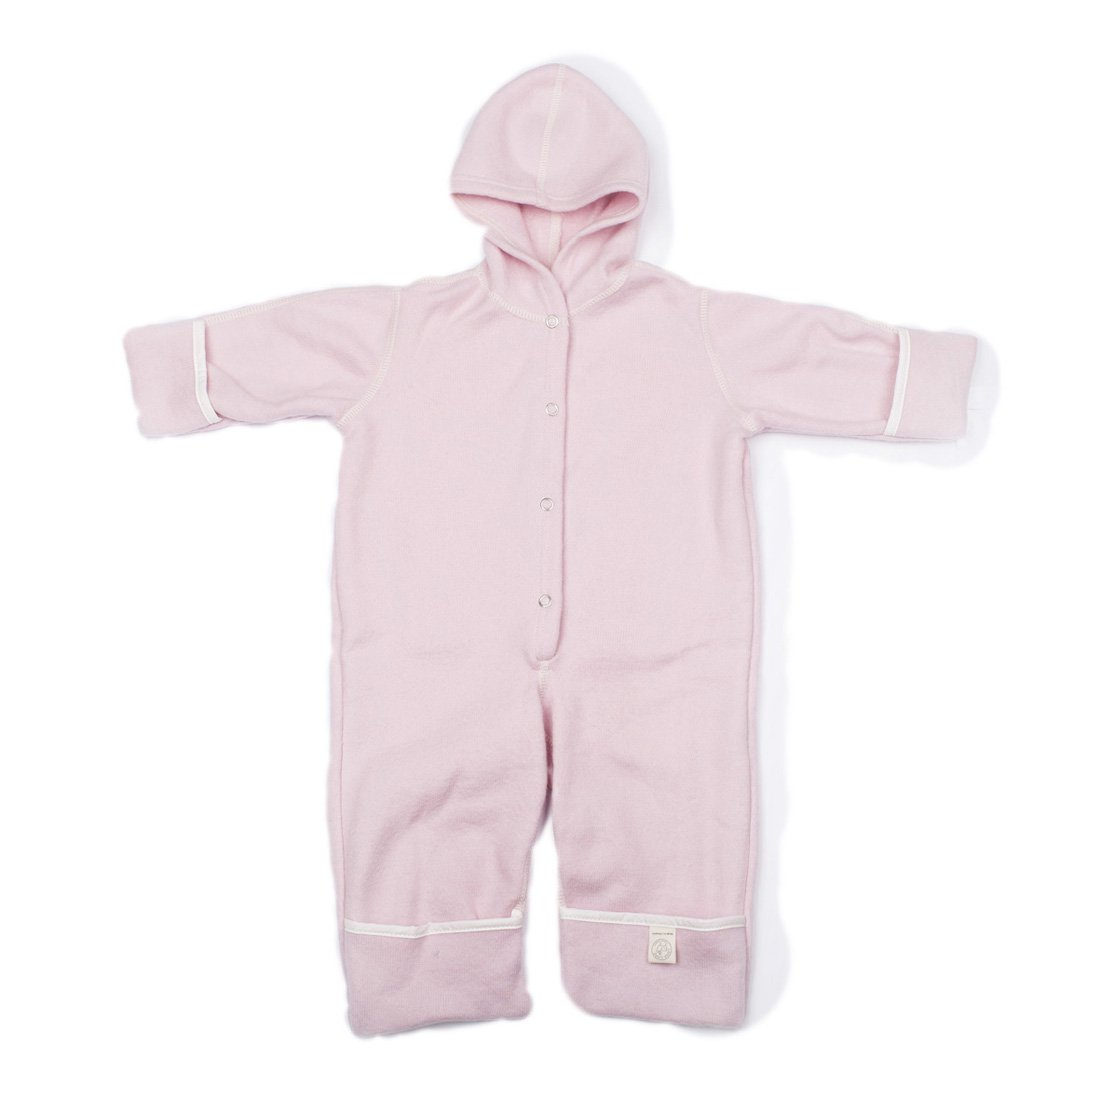 LANACare Organic Merino Wool Hooded Overall, Natural White, size 80 (9-12 mo)